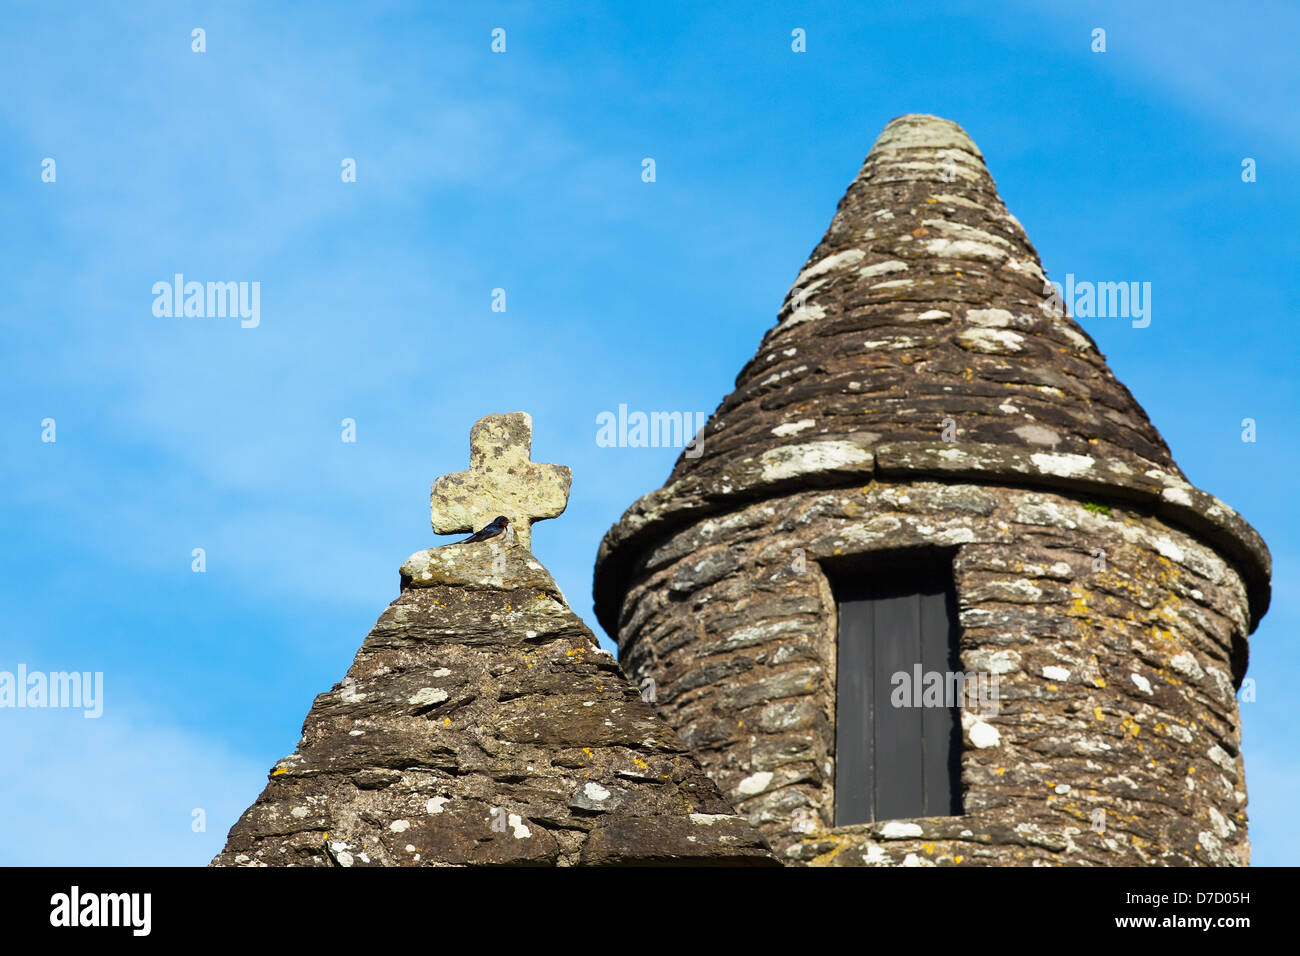 Belfry with conical roof of saint kevin\'s church;Glendalough county ...